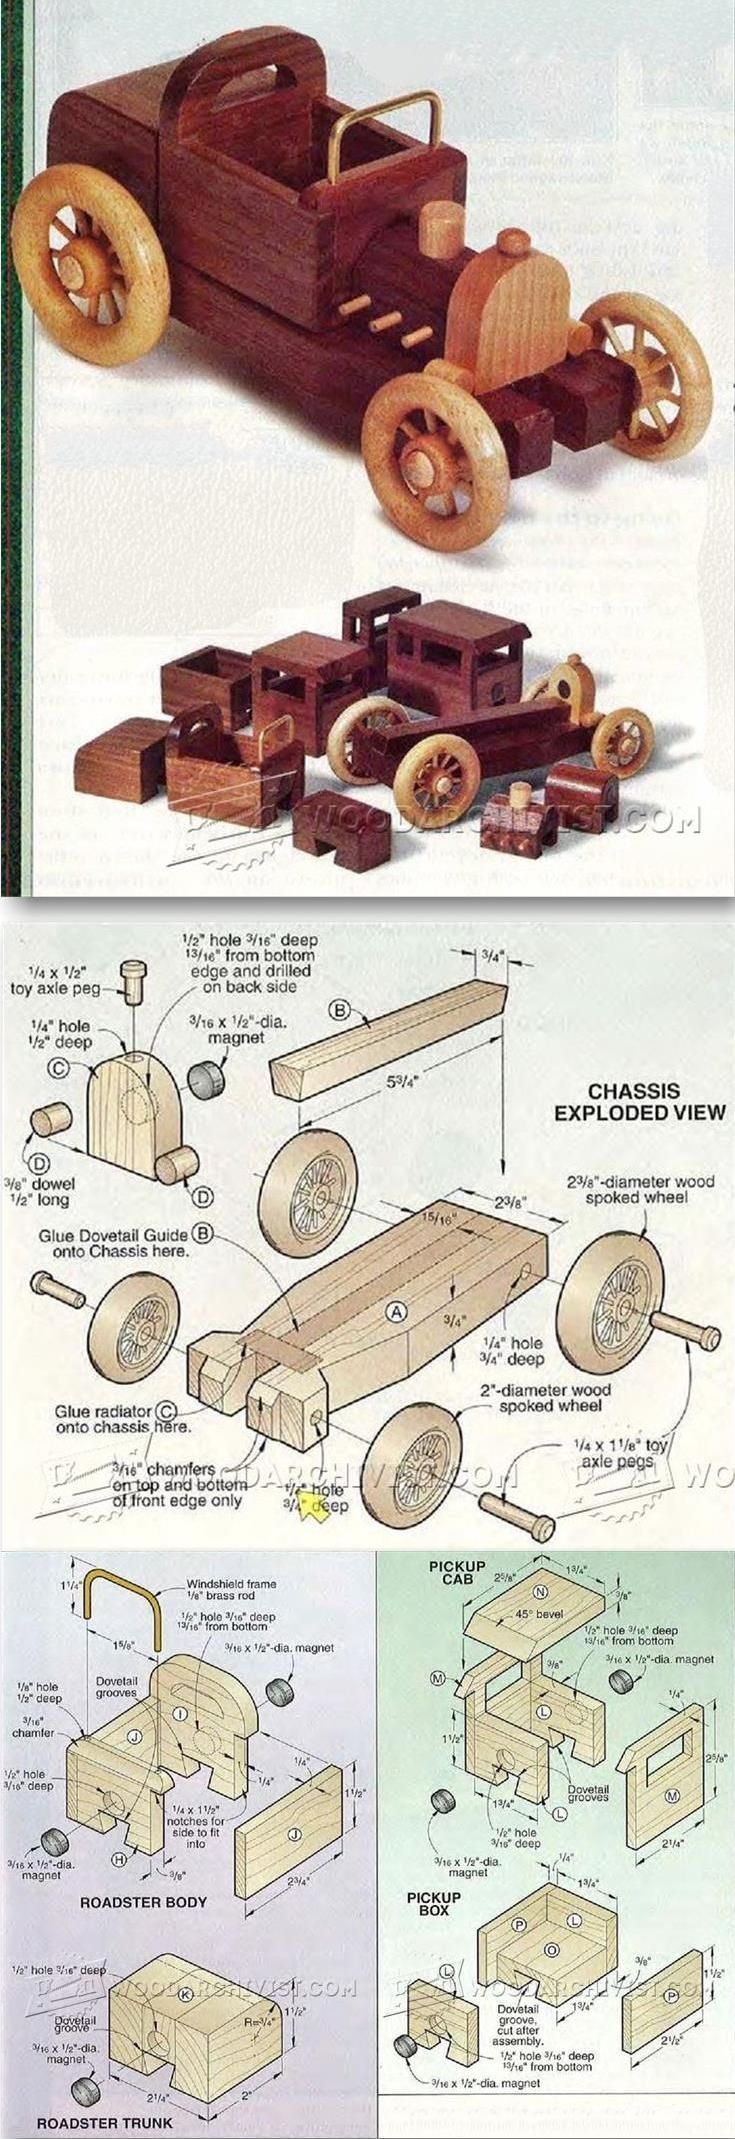 Wooden Toy Car Plans - Children's Wooden Toy Plans and Projects   WoodArchivist.com